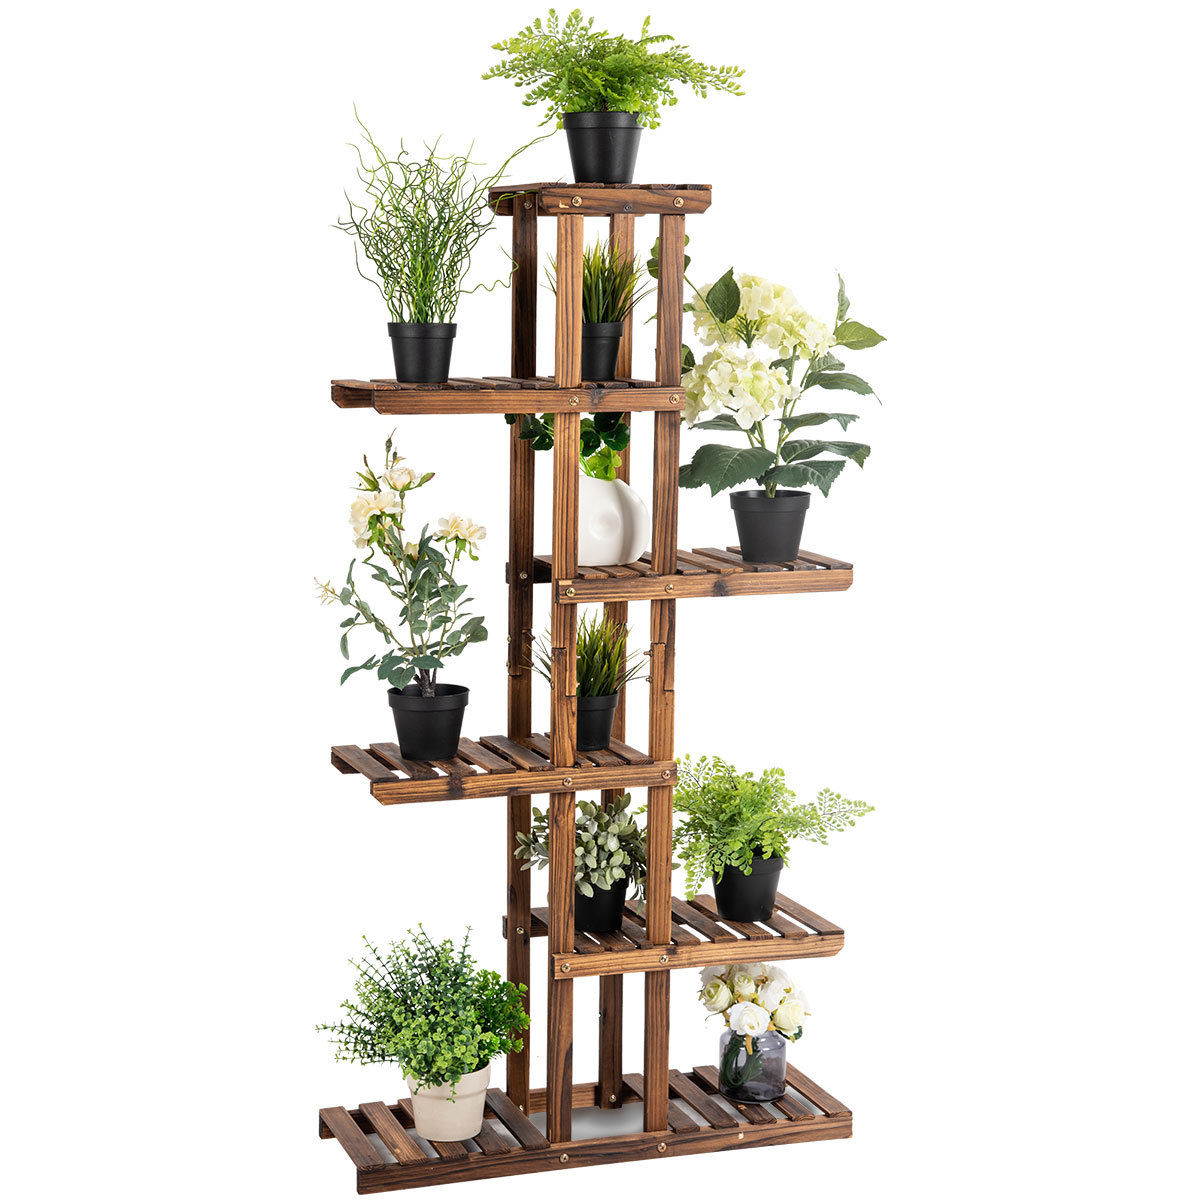 Costway 6 Tier 11 Pots Wooden Plant Flower Display Stand Wood Shelf Storage Rack Garden